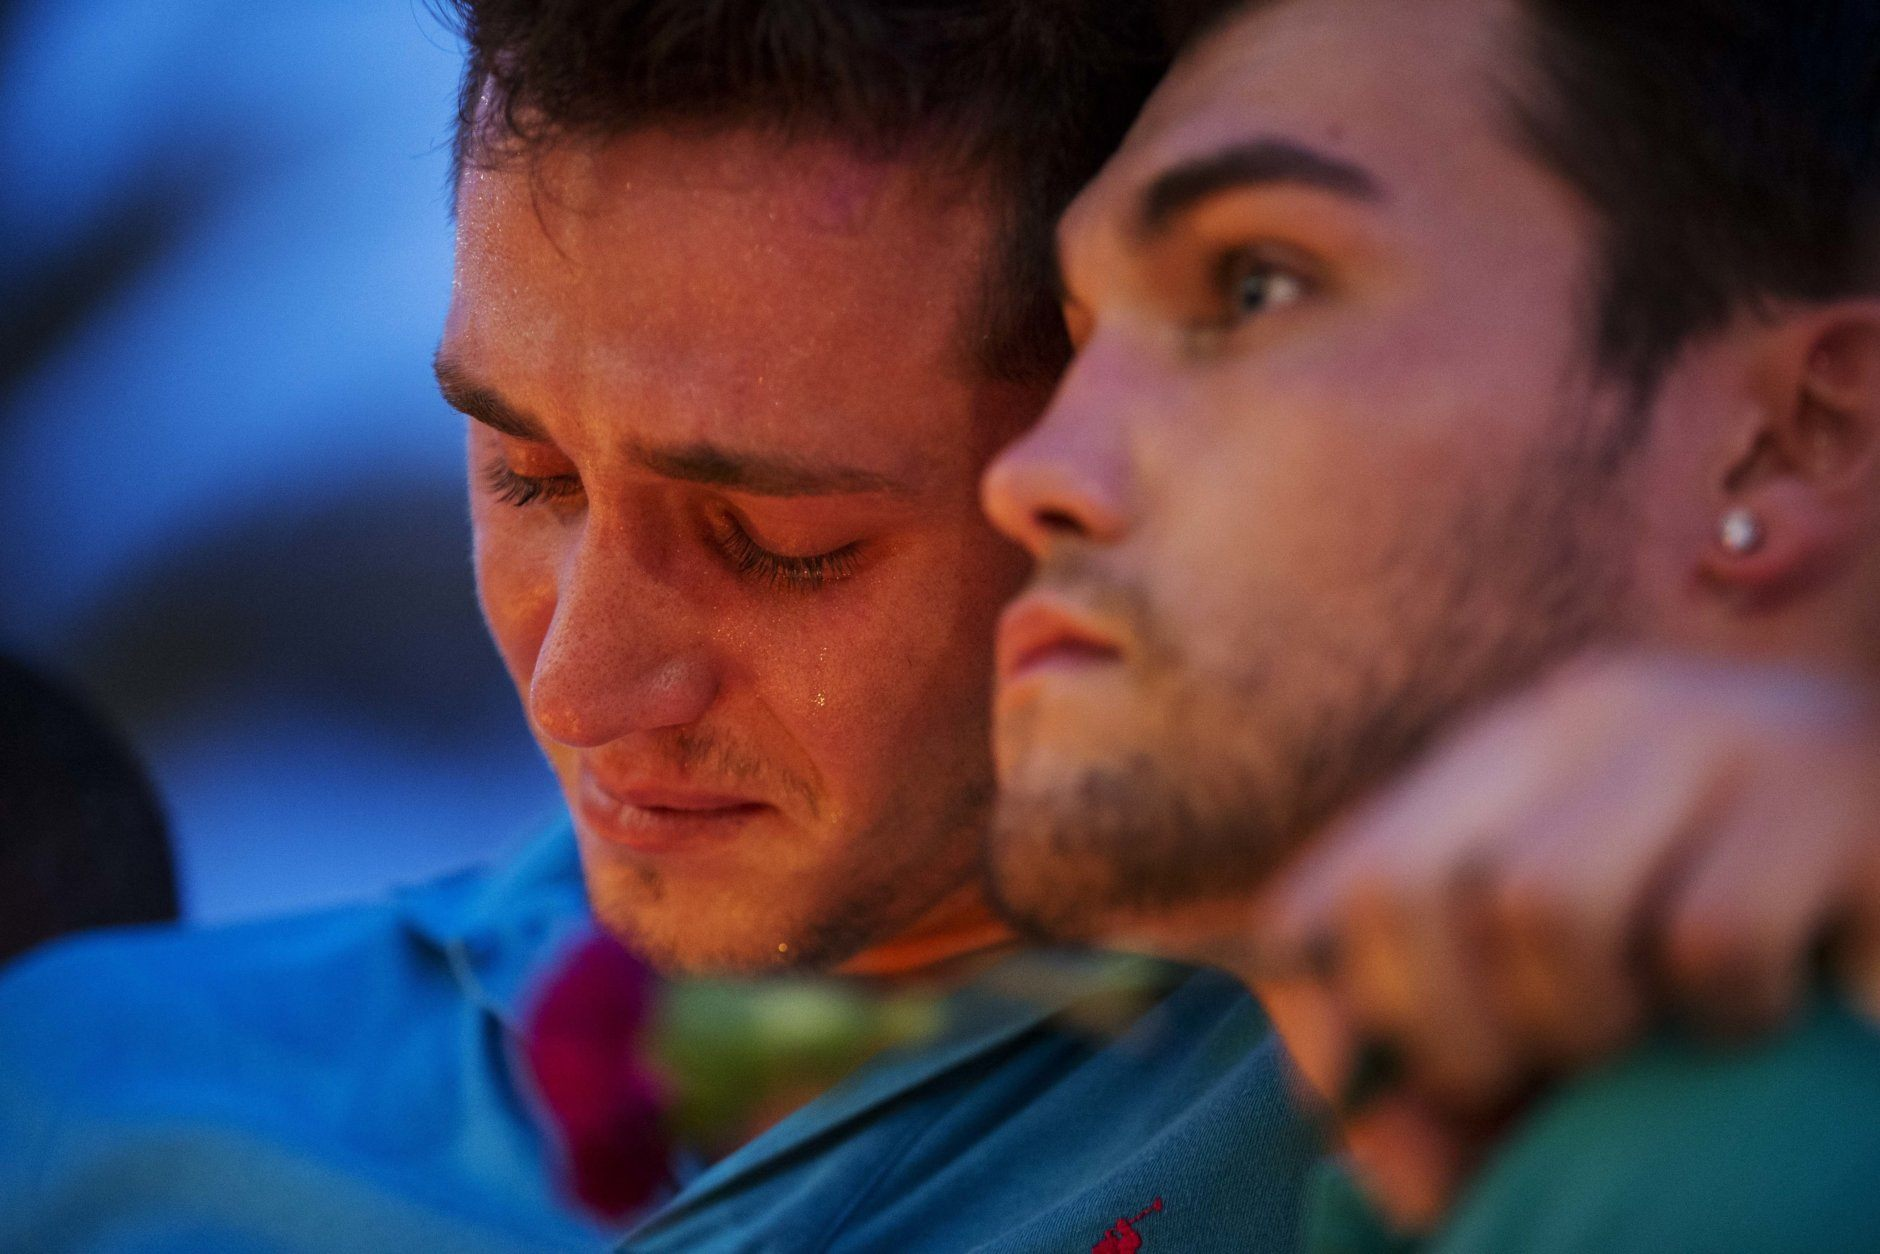 Austin Hagge, left, cries on the shoulder of Austin Matthew, during a candlelight vigil downtown for the victims of a mass shooting at the Pulse nightclub Monday, June 13, 2016, in Orlando, Fla. Hagge and Matthew lost two friends in the shooting. A gunman has killed dozens of people in a massacre at a crowded gay nightclub in Orlando on Sunday, making it the deadliest mass shooting in modern U.S. history. (AP Photo/David Goldman)